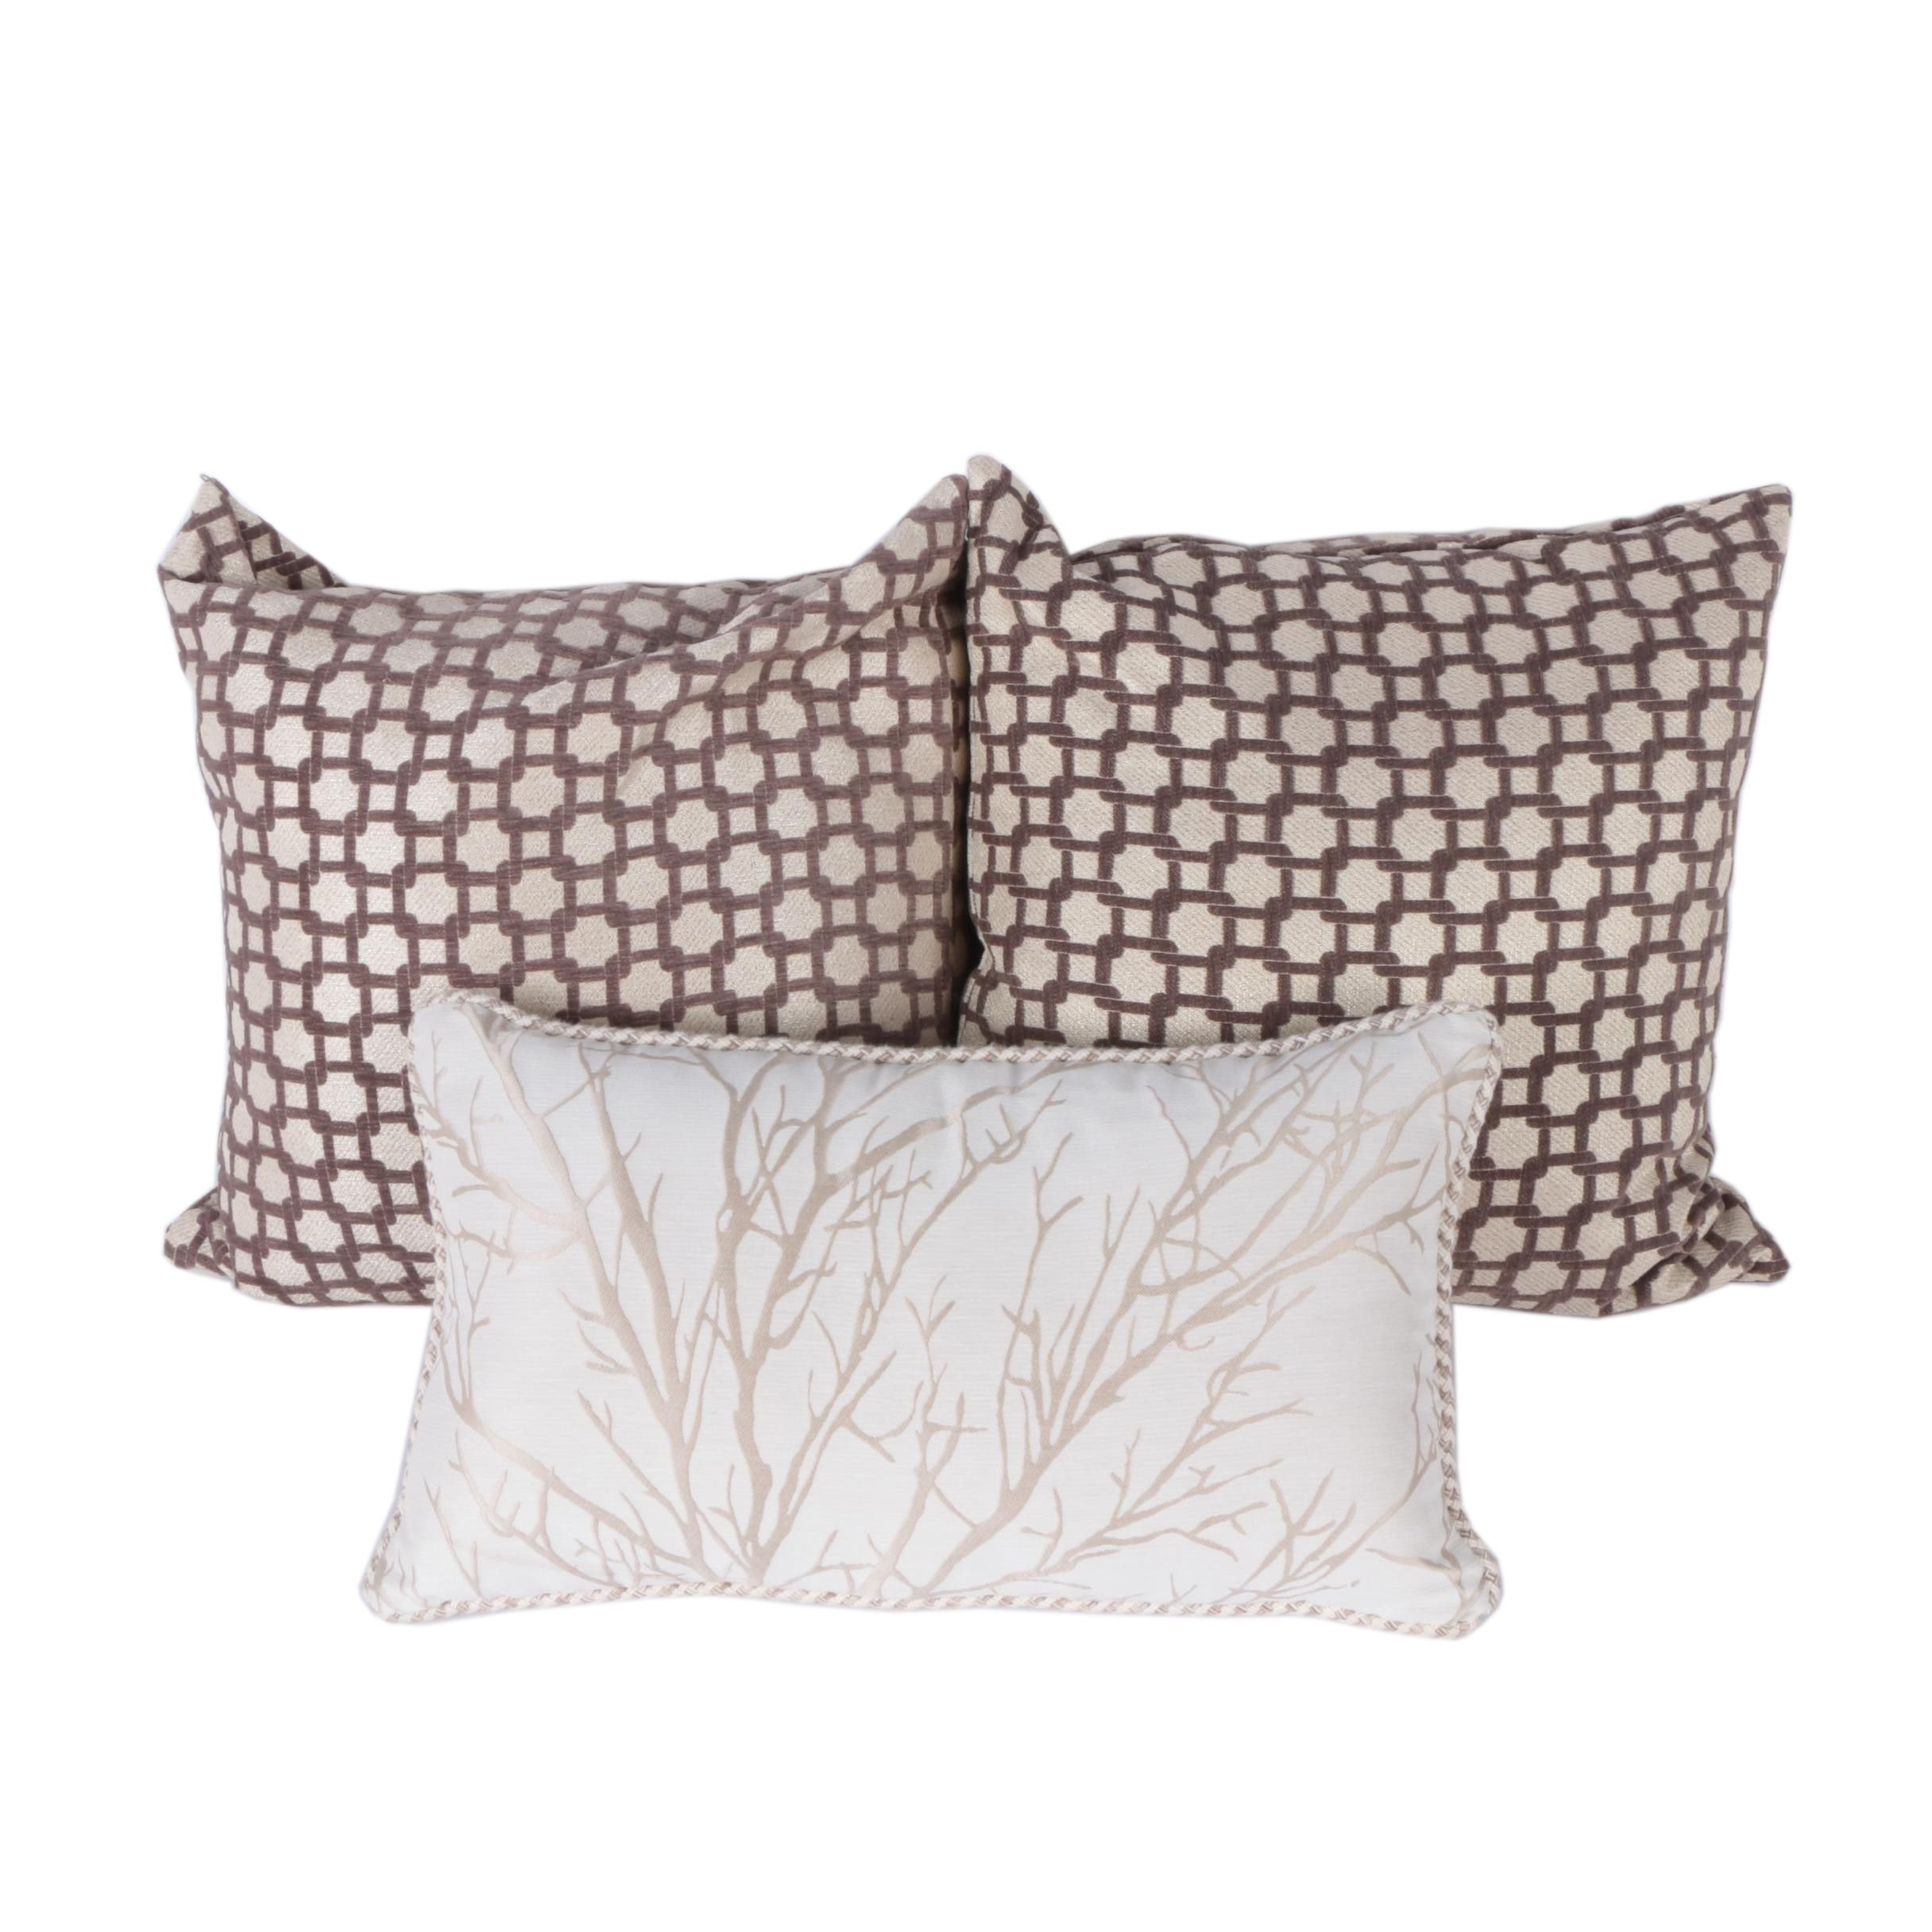 Collection of Three Neutral Toned Decorative Throw Pillows